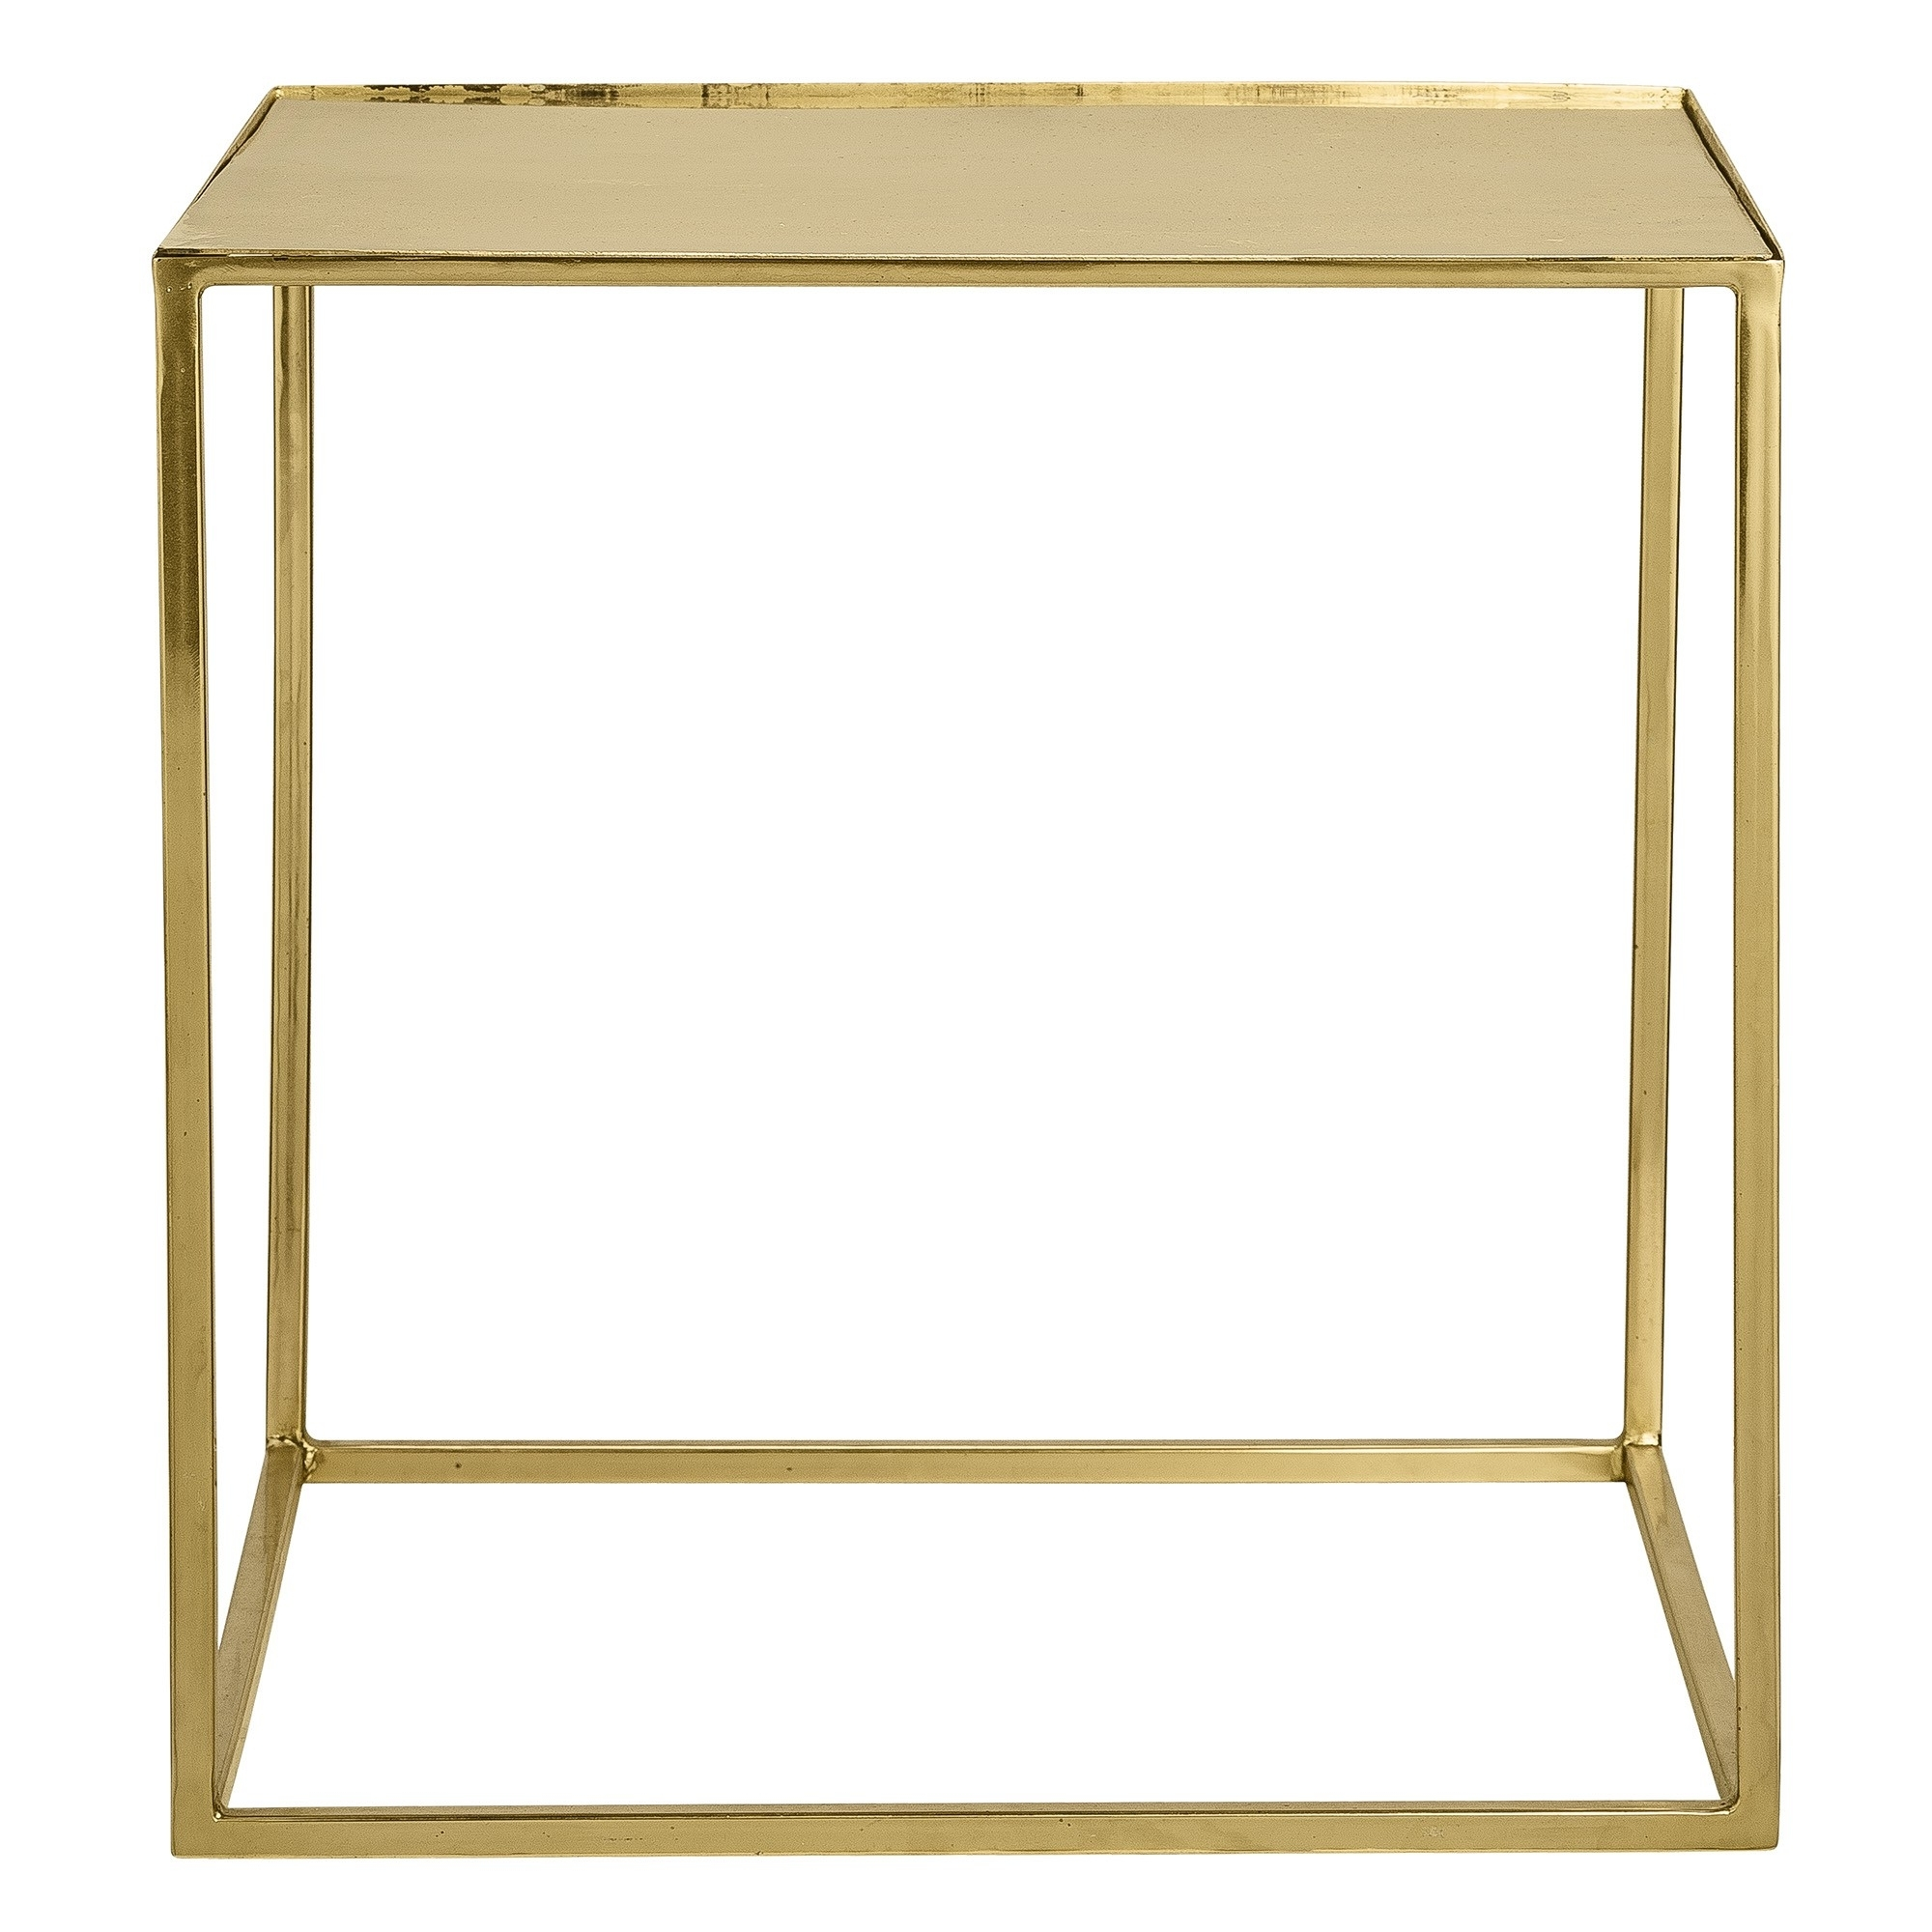 Most Popular Rectangular Brass Finish And Glass Coffee Tables Inside The Jane Side / Coffee Table – Gold Finish, Metal, Glass (View 14 of 20)